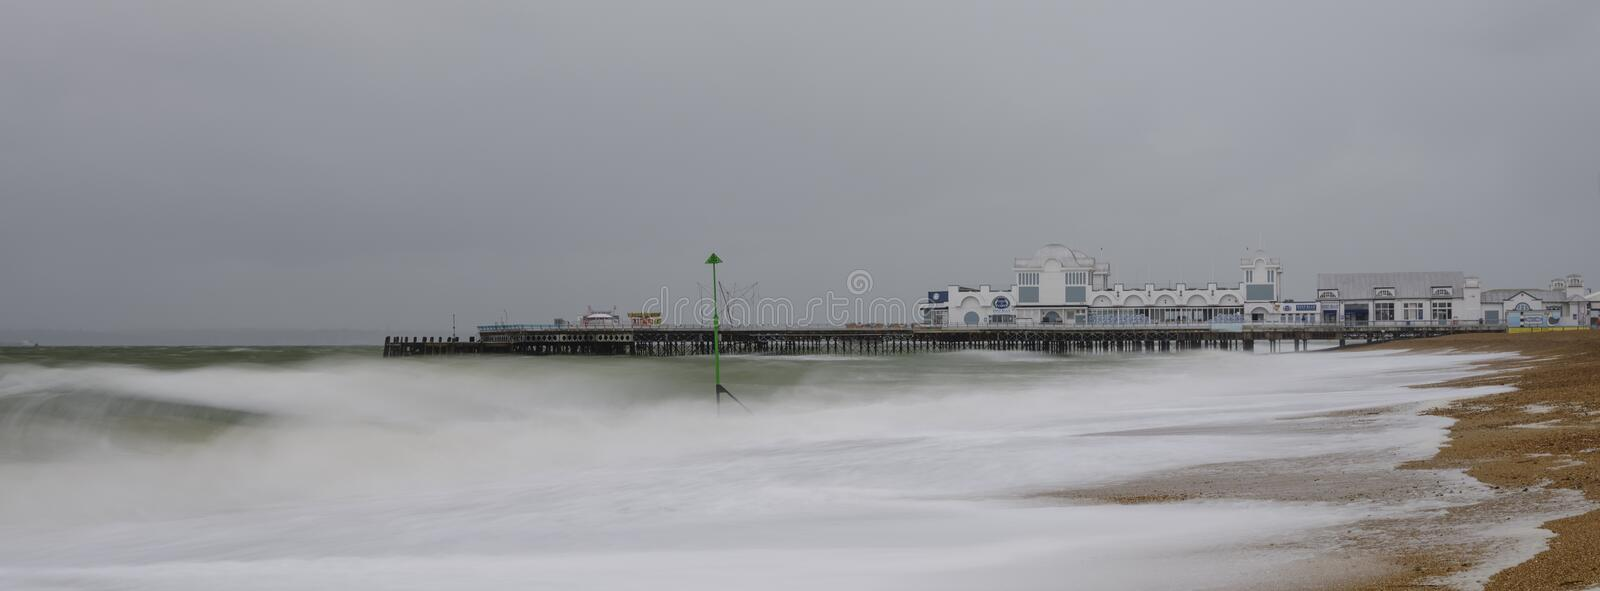 Stormy seas, slow shutter speed and Southsea Pier, Hampshire, UK. Southsea, UK - April 4, 2019:  Stormy seas, slow shutter speed and Southsea Pier, Hampshire, UK stock photos